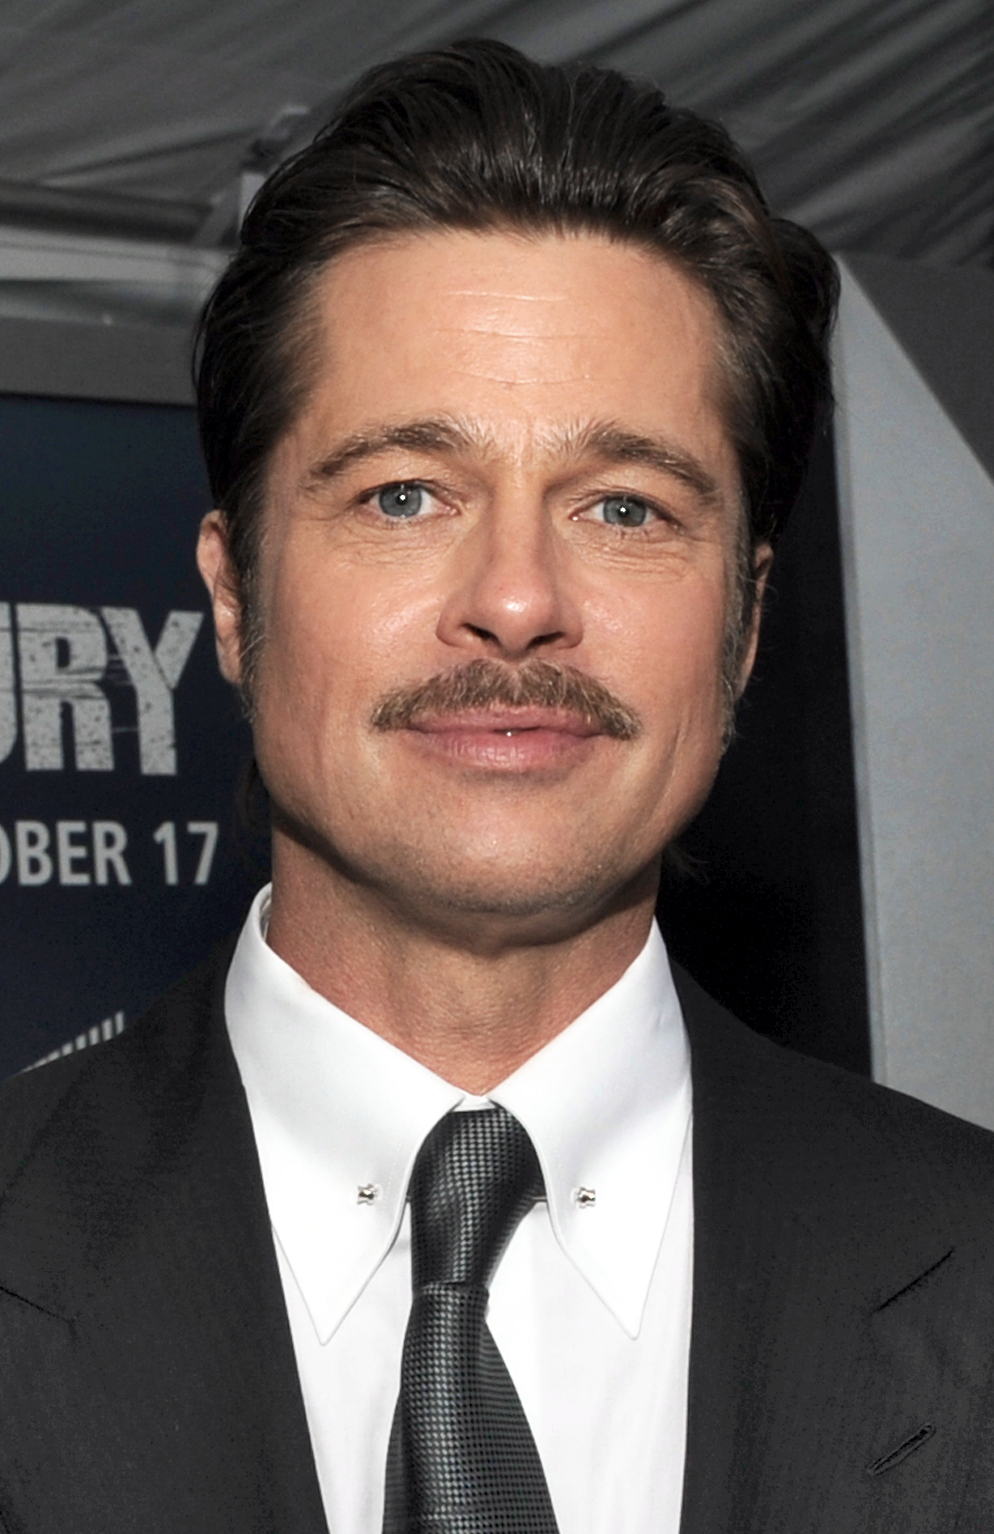 brad pitt moviesbrad pitt 2016, brad pitt 2017, brad pitt movies, brad pitt instagram, brad pitt films, brad pitt filmleri, brad pitt fury, brad pitt filmi, brad pitt fight club, brad pitt height, brad pitt young, brad pitt wiki, brad pitt news, brad pitt allied, brad pitt hairstyle, brad pitt tattoo, brad pitt biography, brad pitt troy, brad pitt jennifer aniston, brad pitt oscar